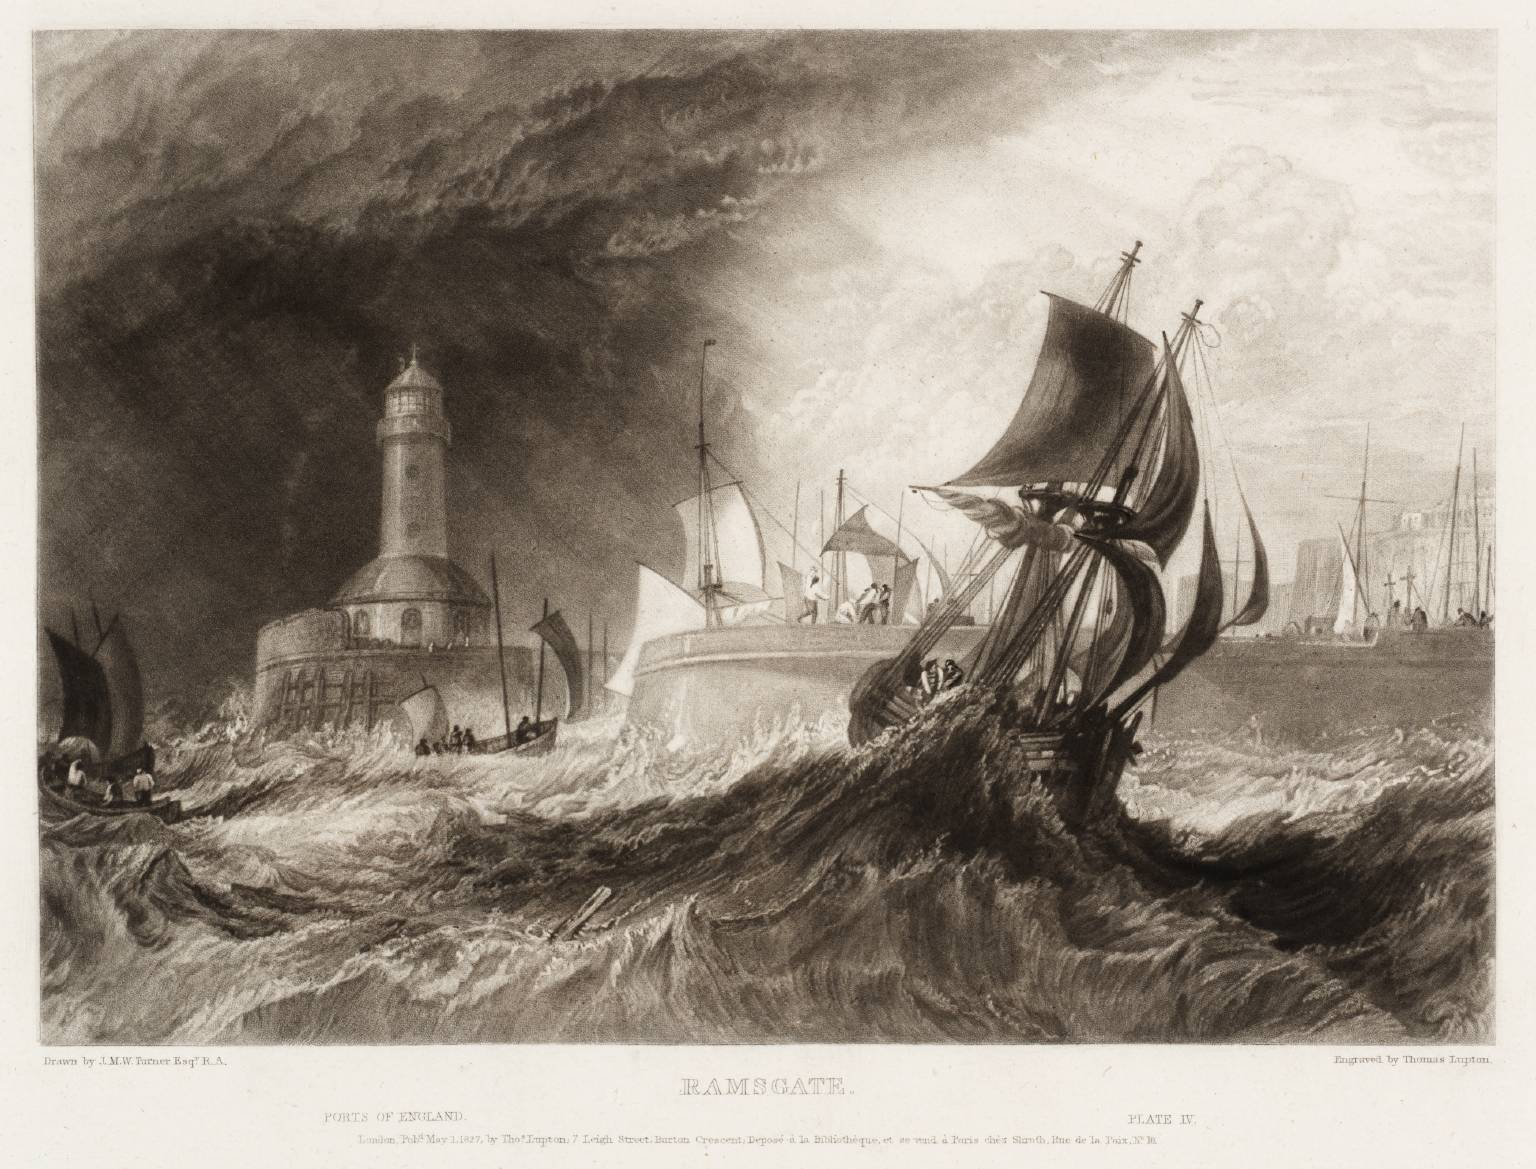 Ramsgate Harbour in a storm, by JMW Turner